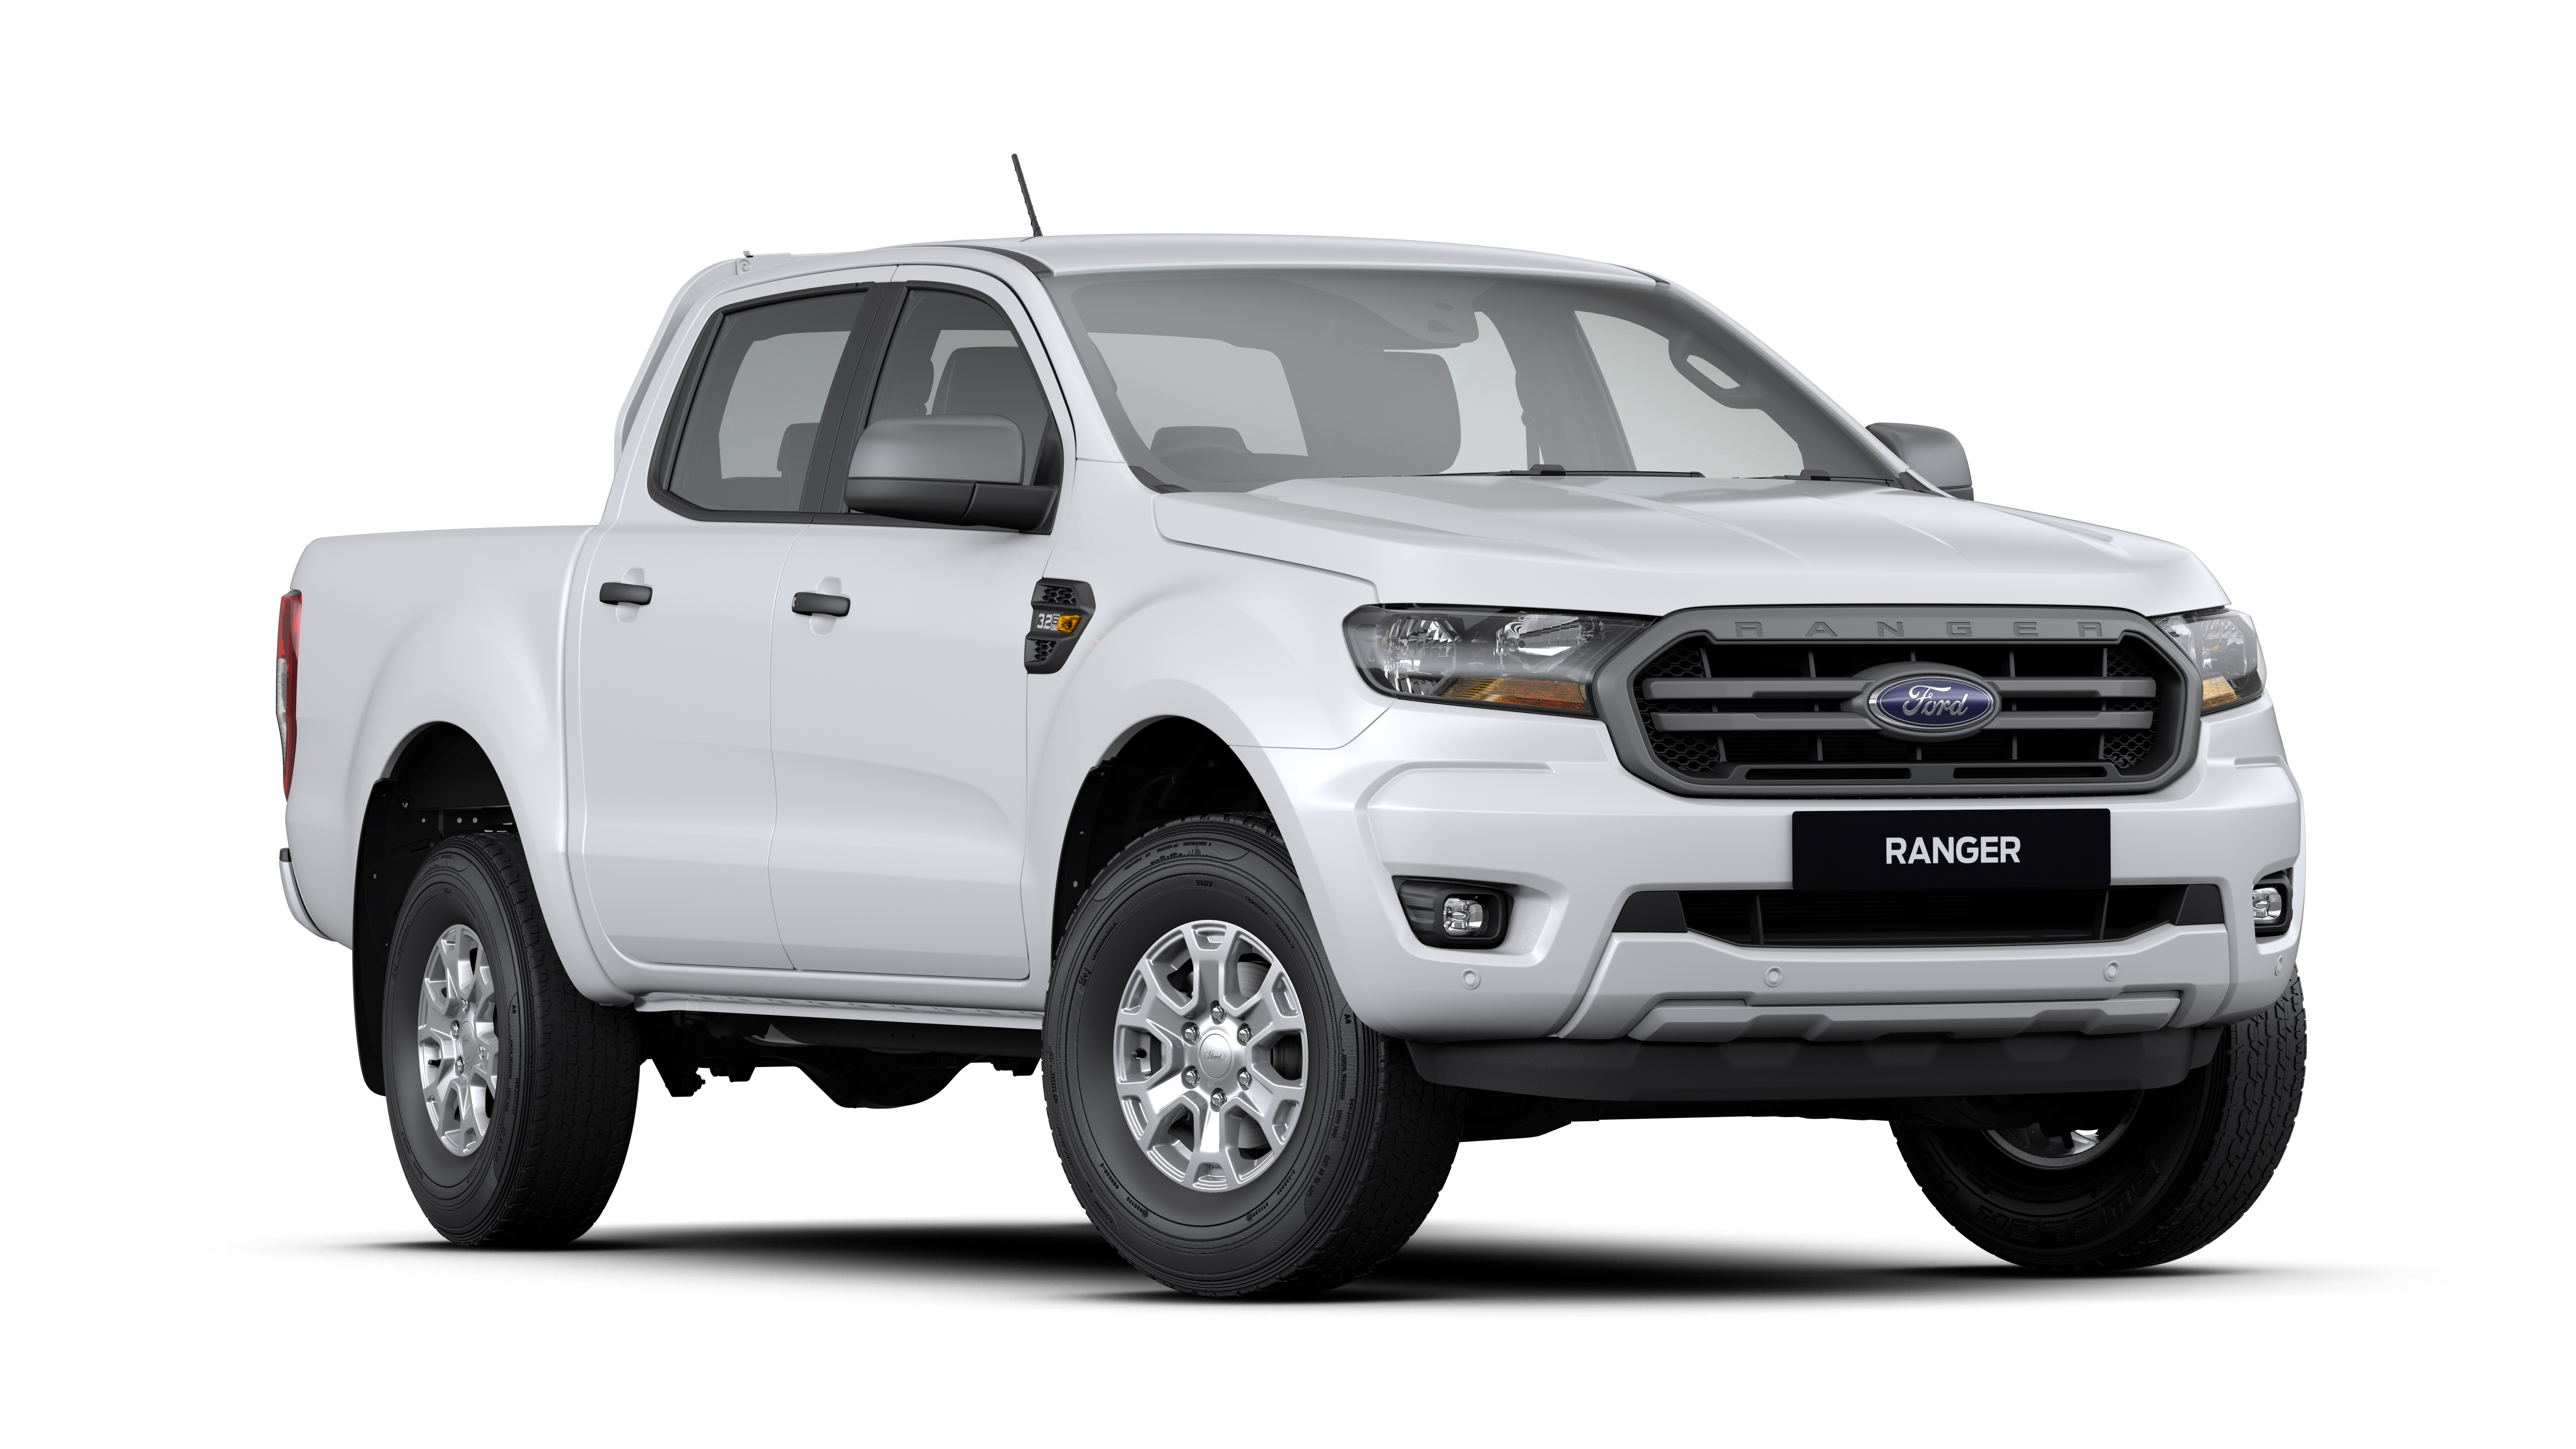 MY2019.75 Ford Ranger XLS 3.2 4x4 Auto Dual cab from only $42990